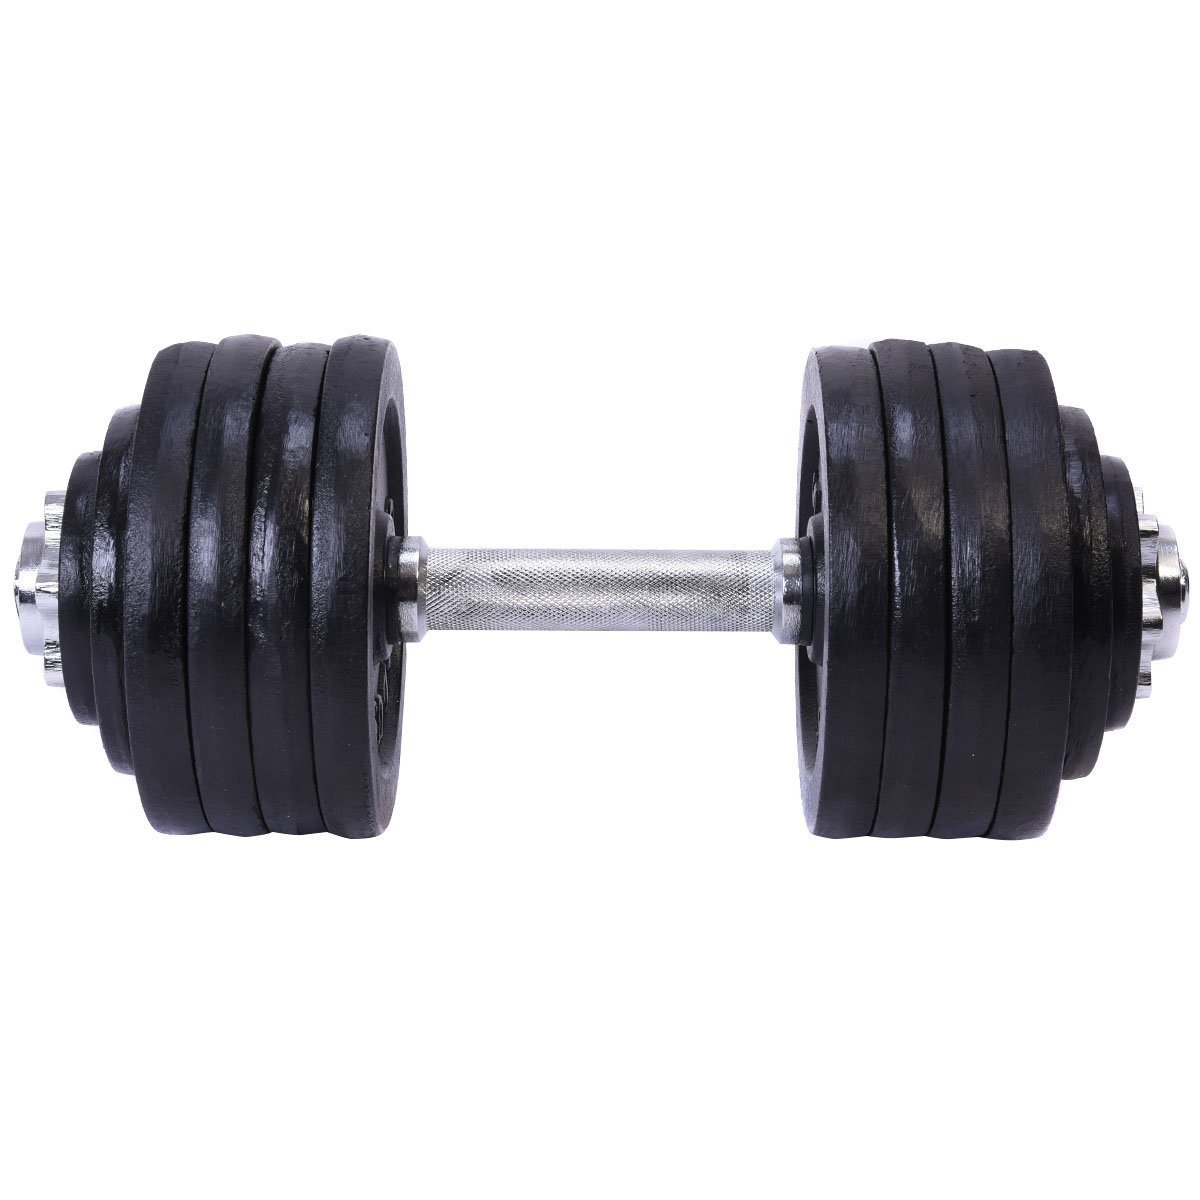 Giantex One 52.5 LB Weight Dumbbell Set Adjustable Cap Gym Barbell Plates Body Workout by Giantex